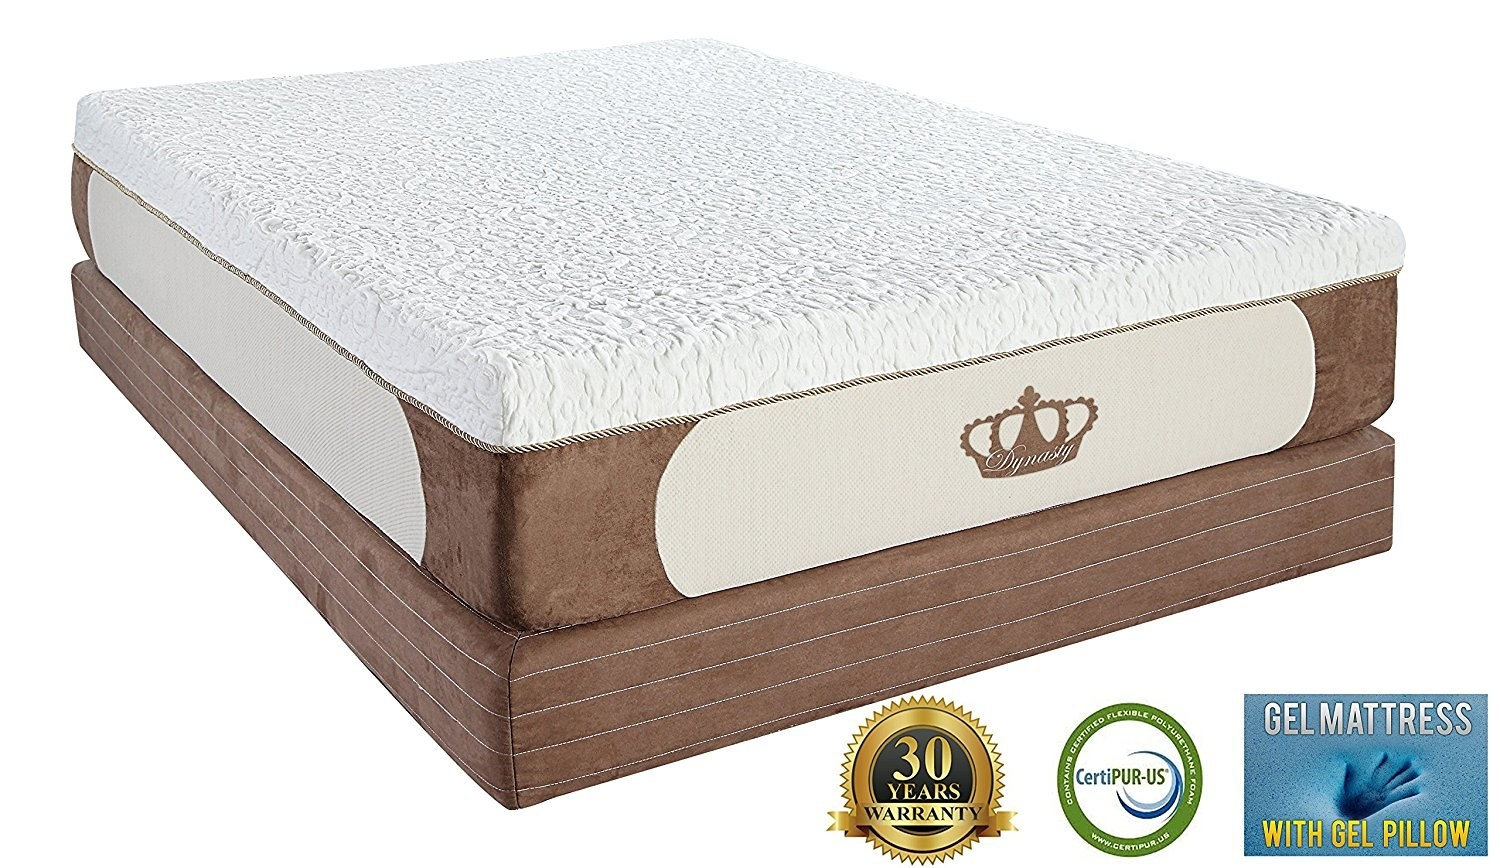 Twin size sleep number bed prices - 17 This Breezy Foam Mattress Encased In A Washable Cover